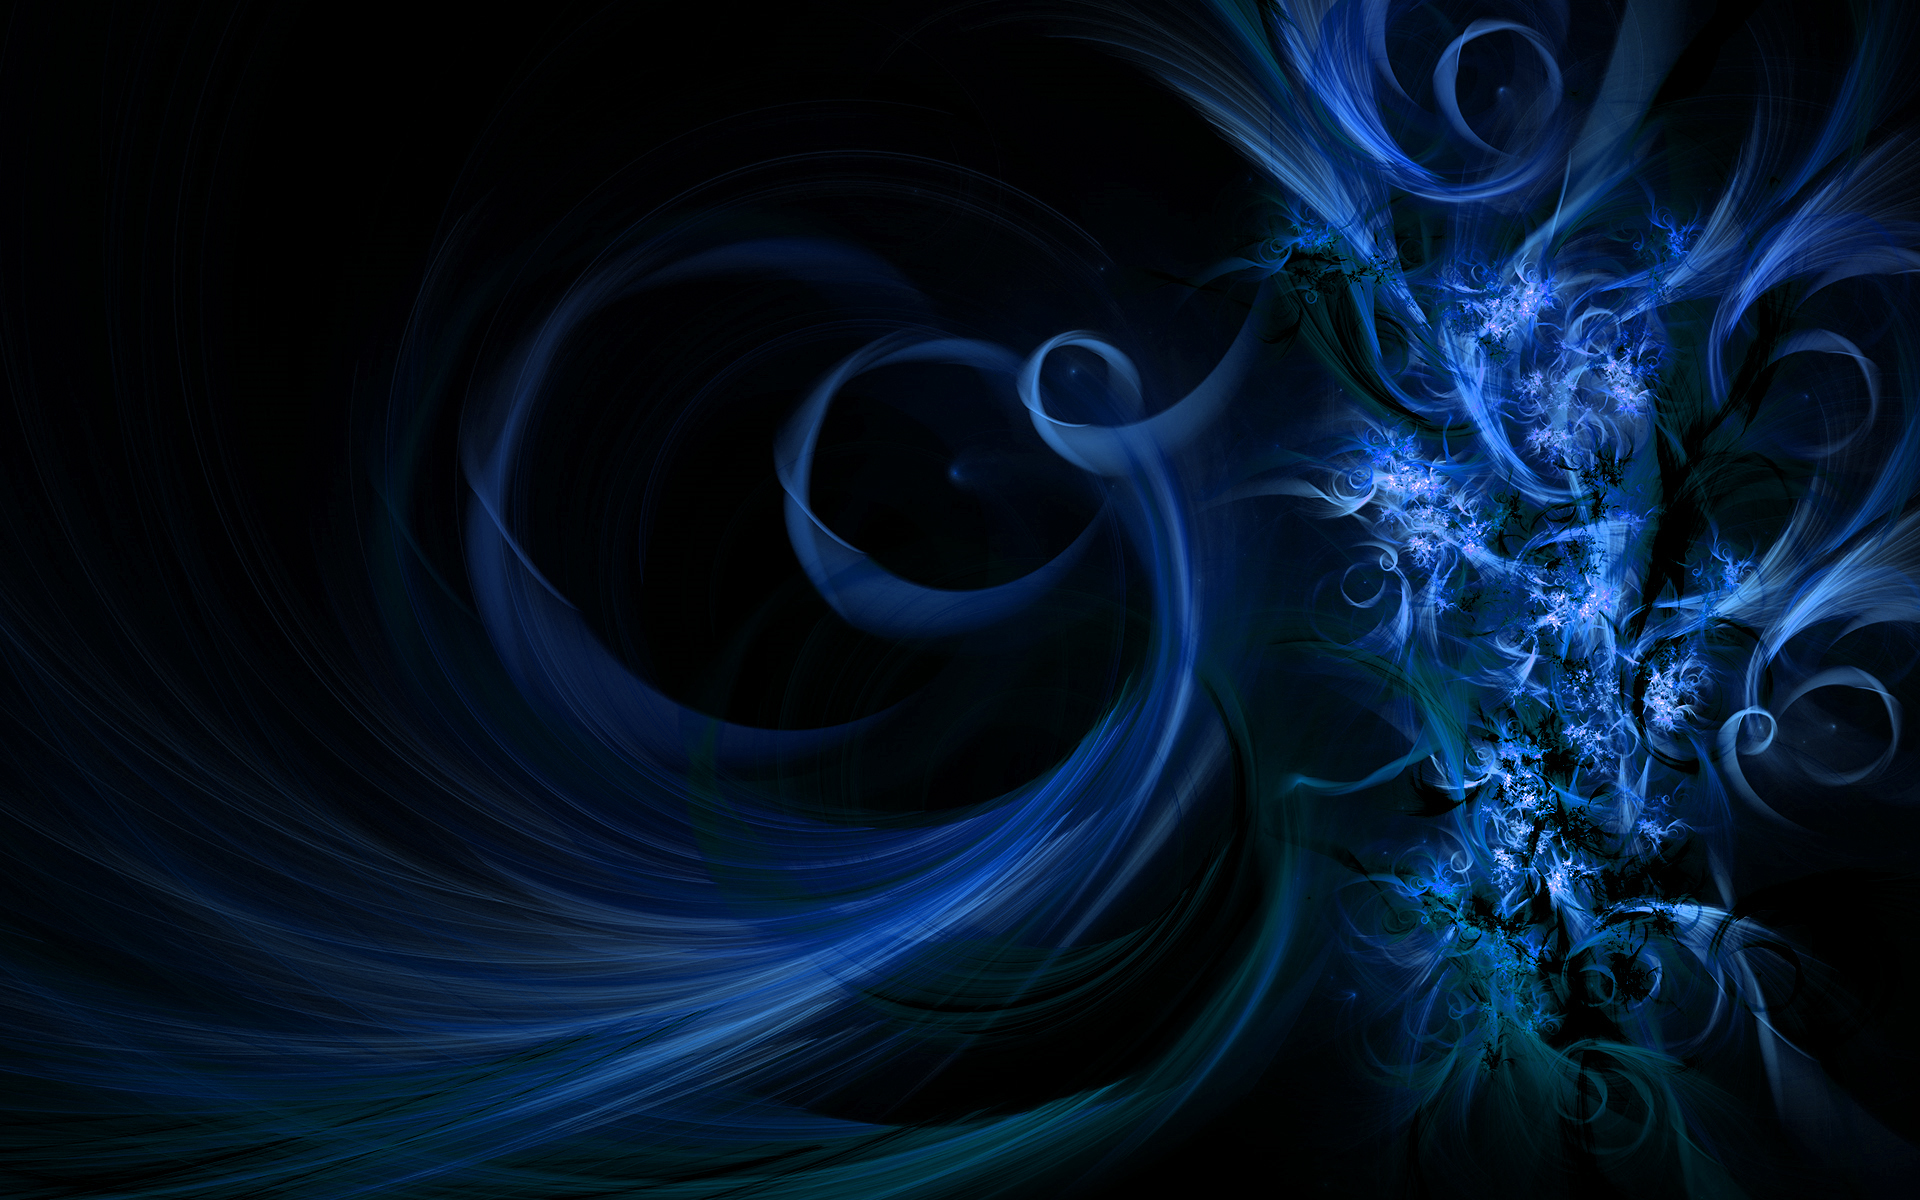 swirly blue widescreen abstract